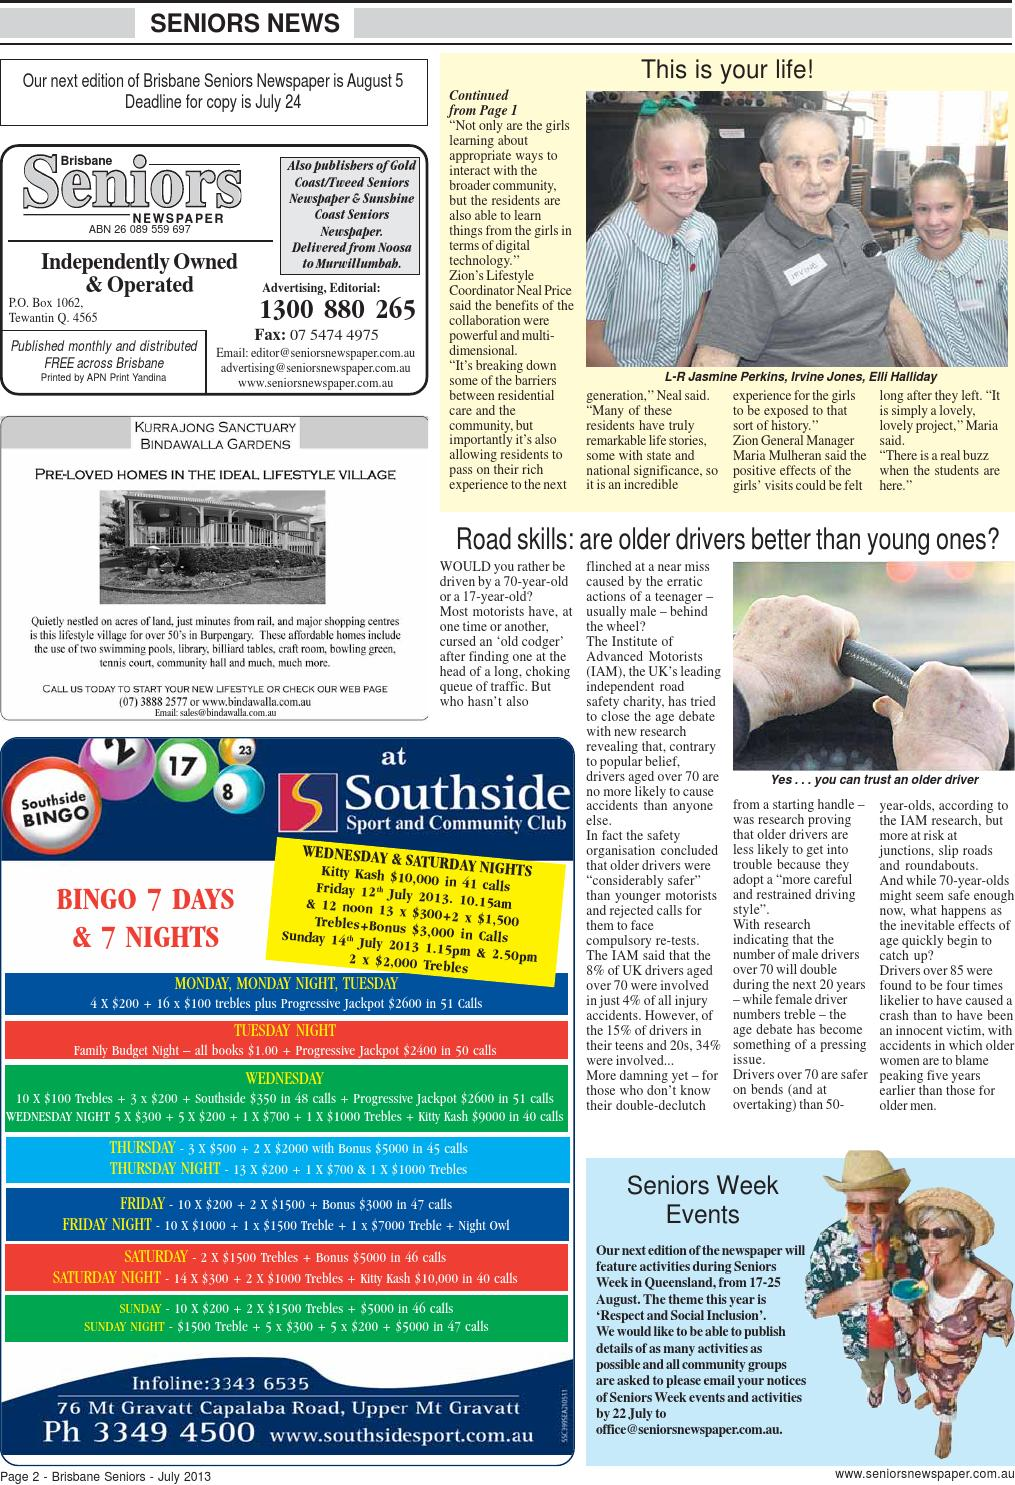 Brisbane seniors newspaper july 2013 by Seniors Newspapers